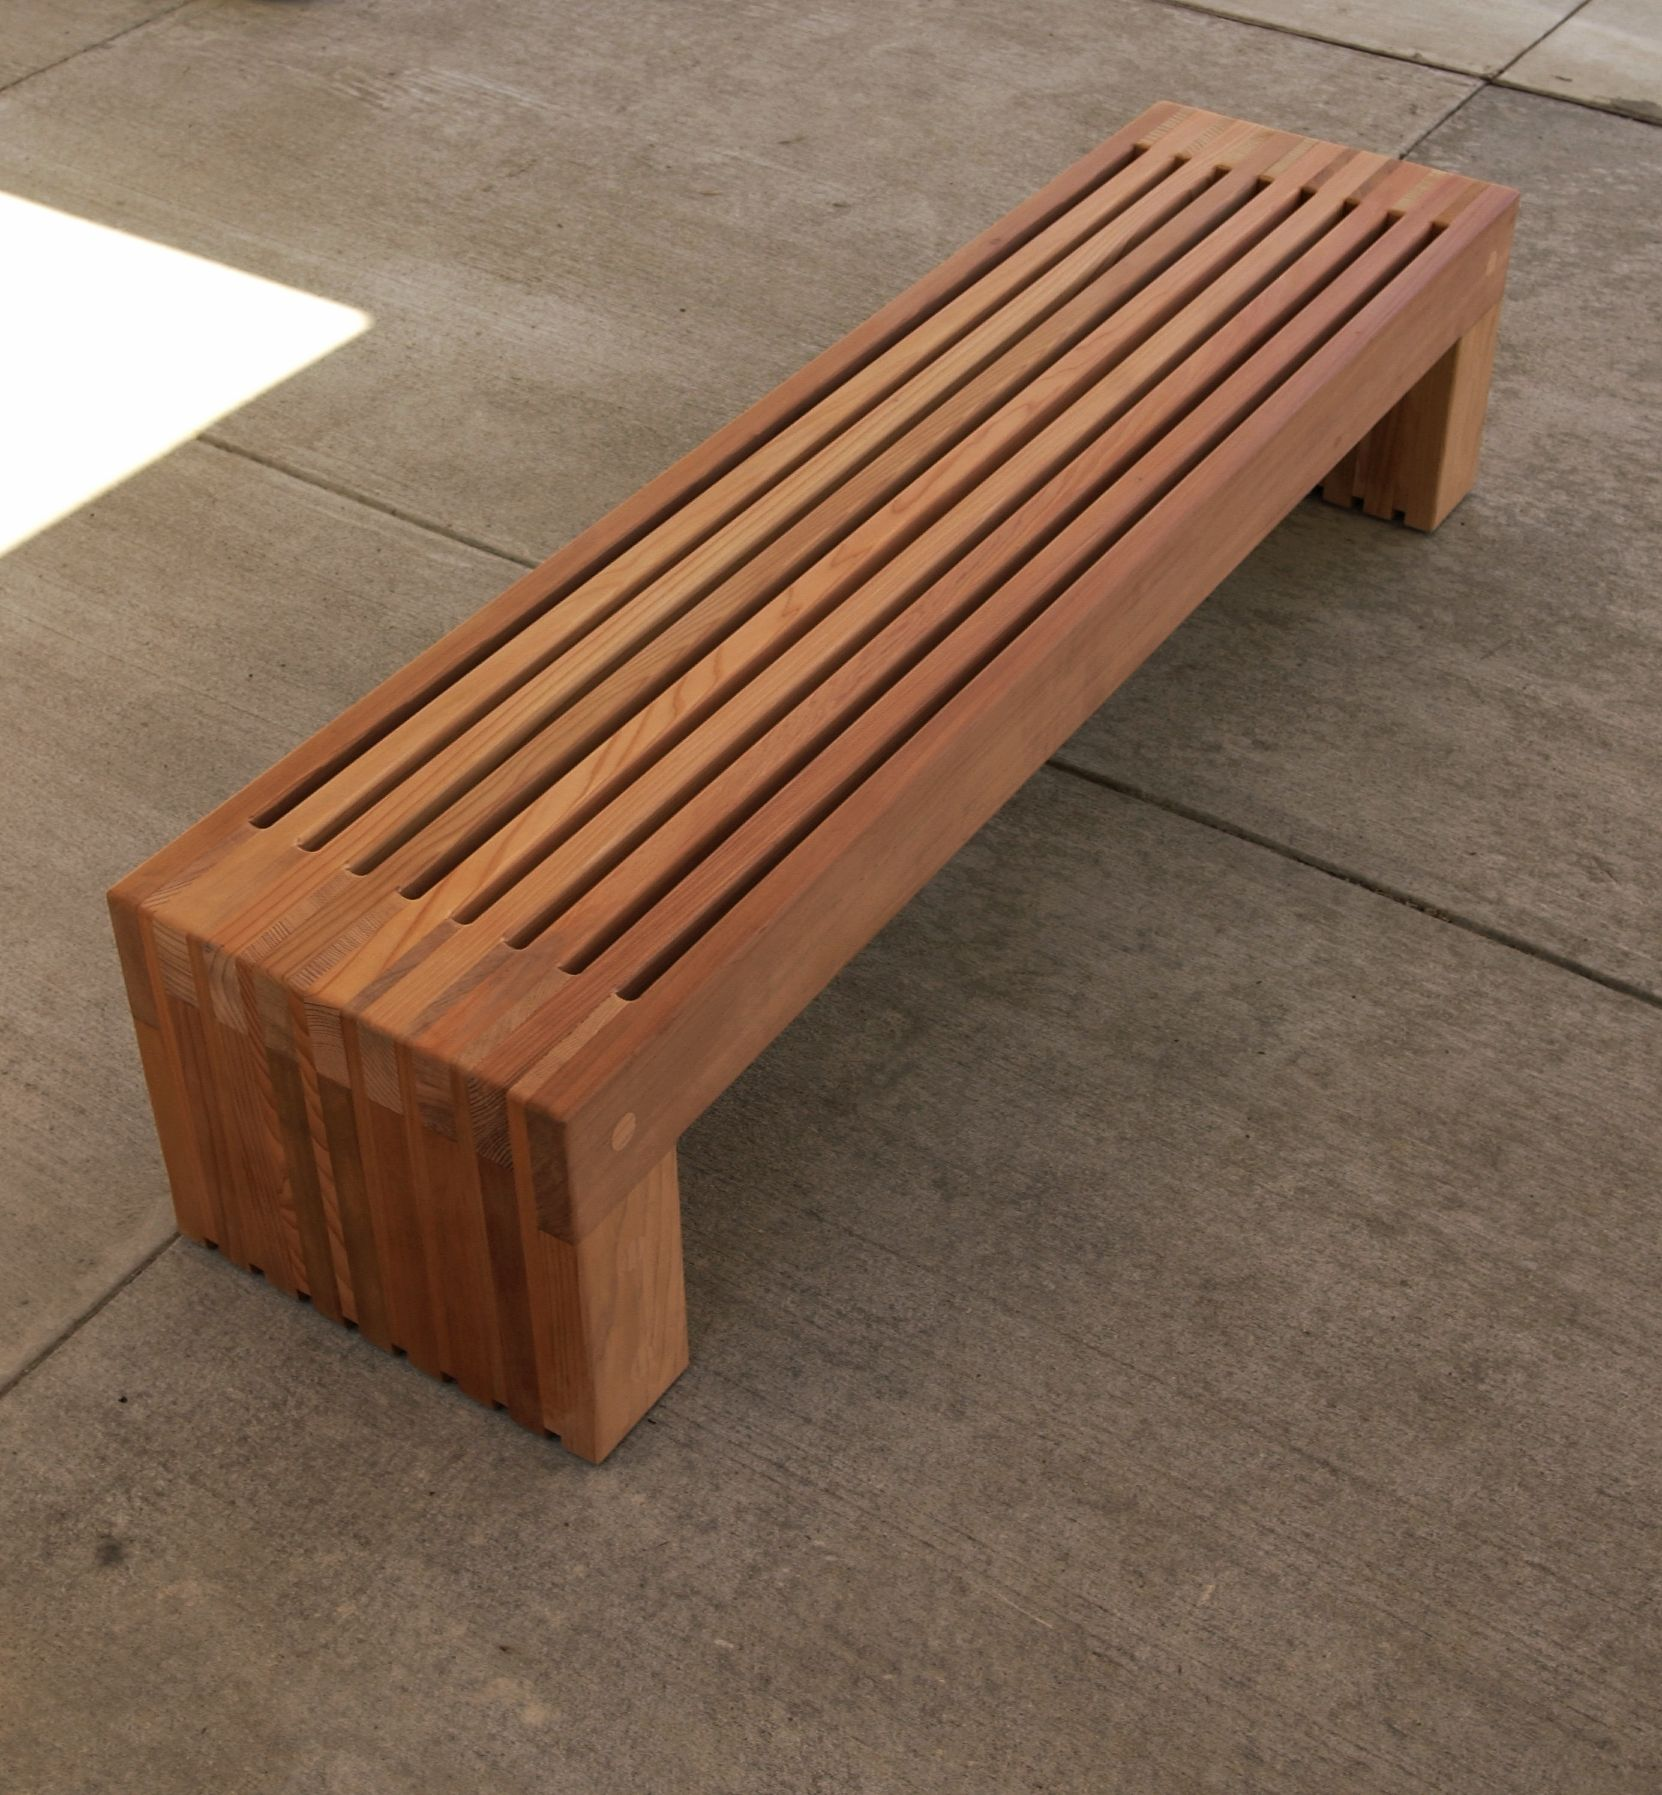 Diy redwood bench design pdf download ultimate computer for Small deck seating ideas